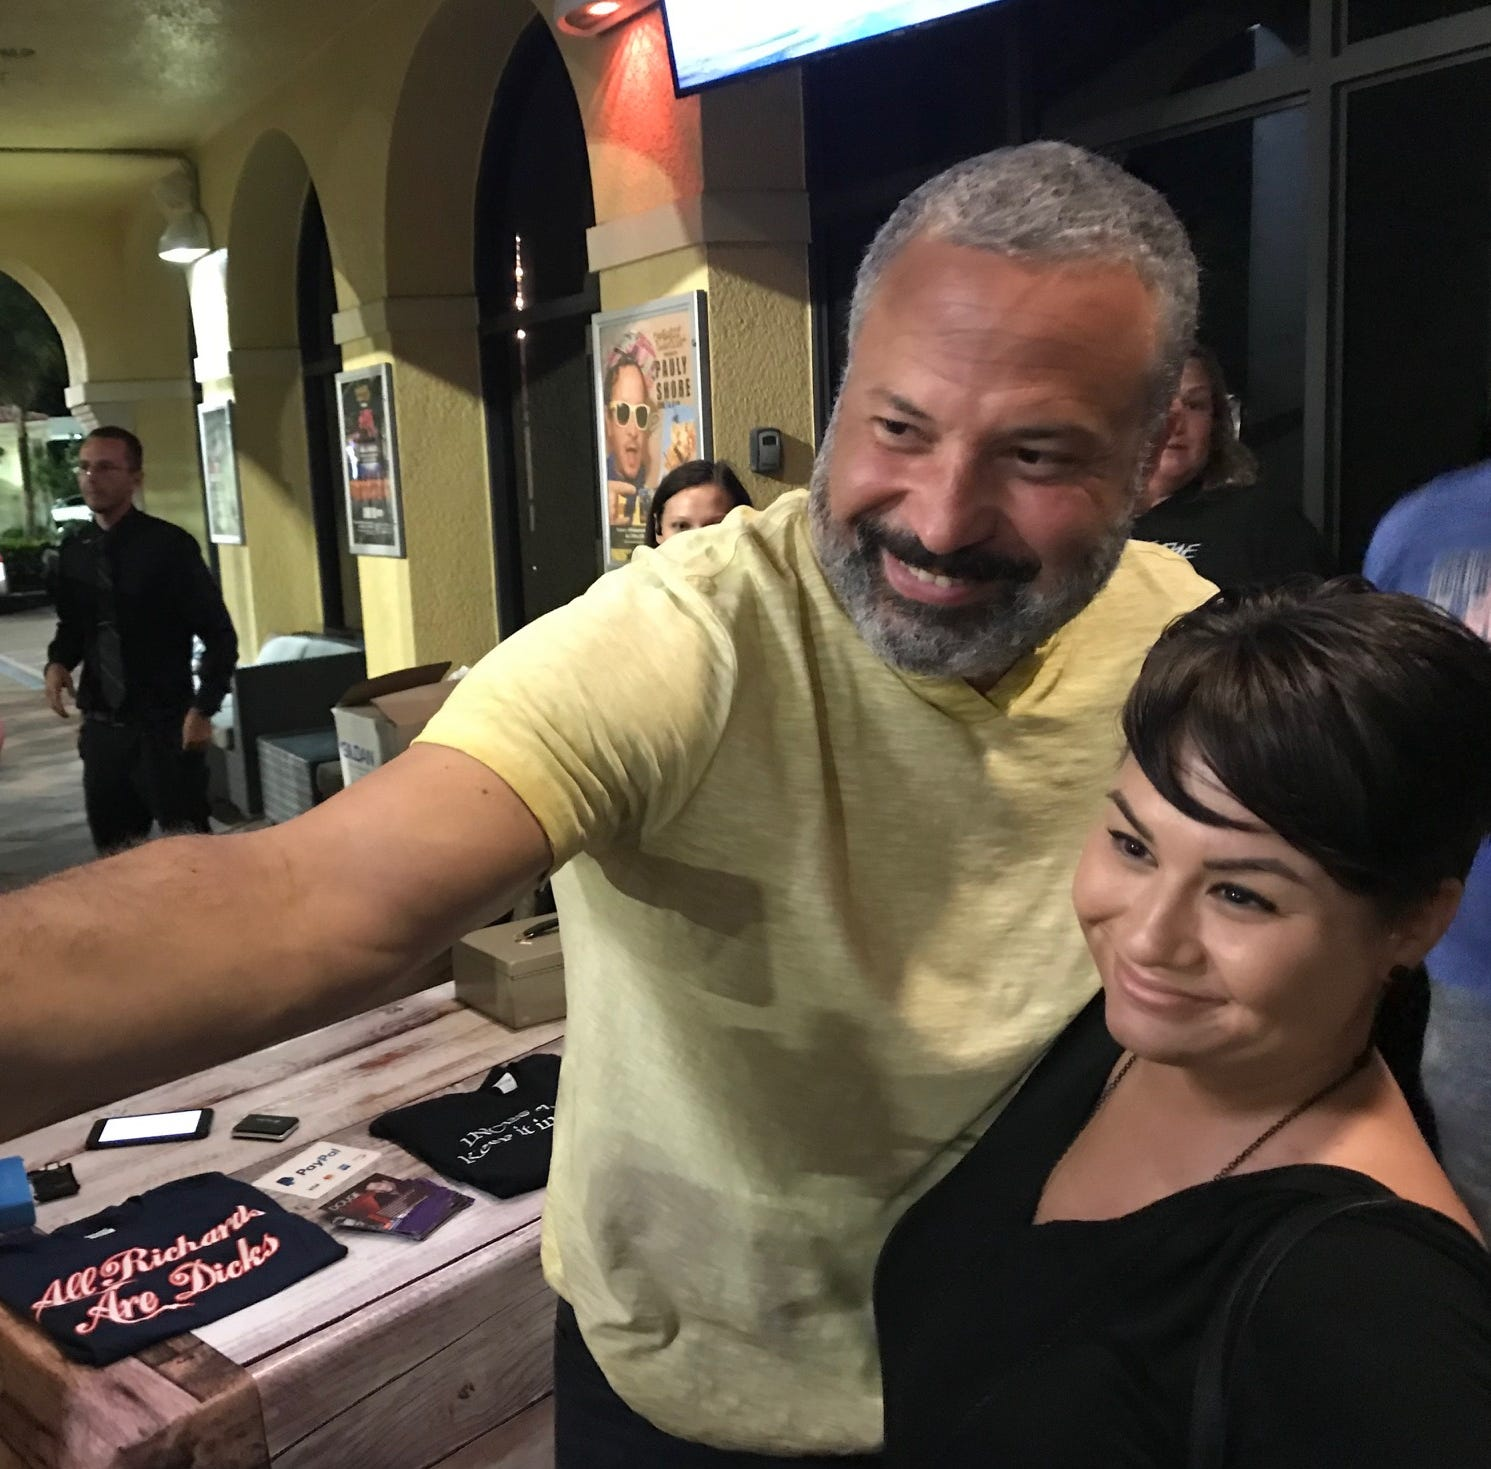 911 call comedian performs in Naples as crowd shows support